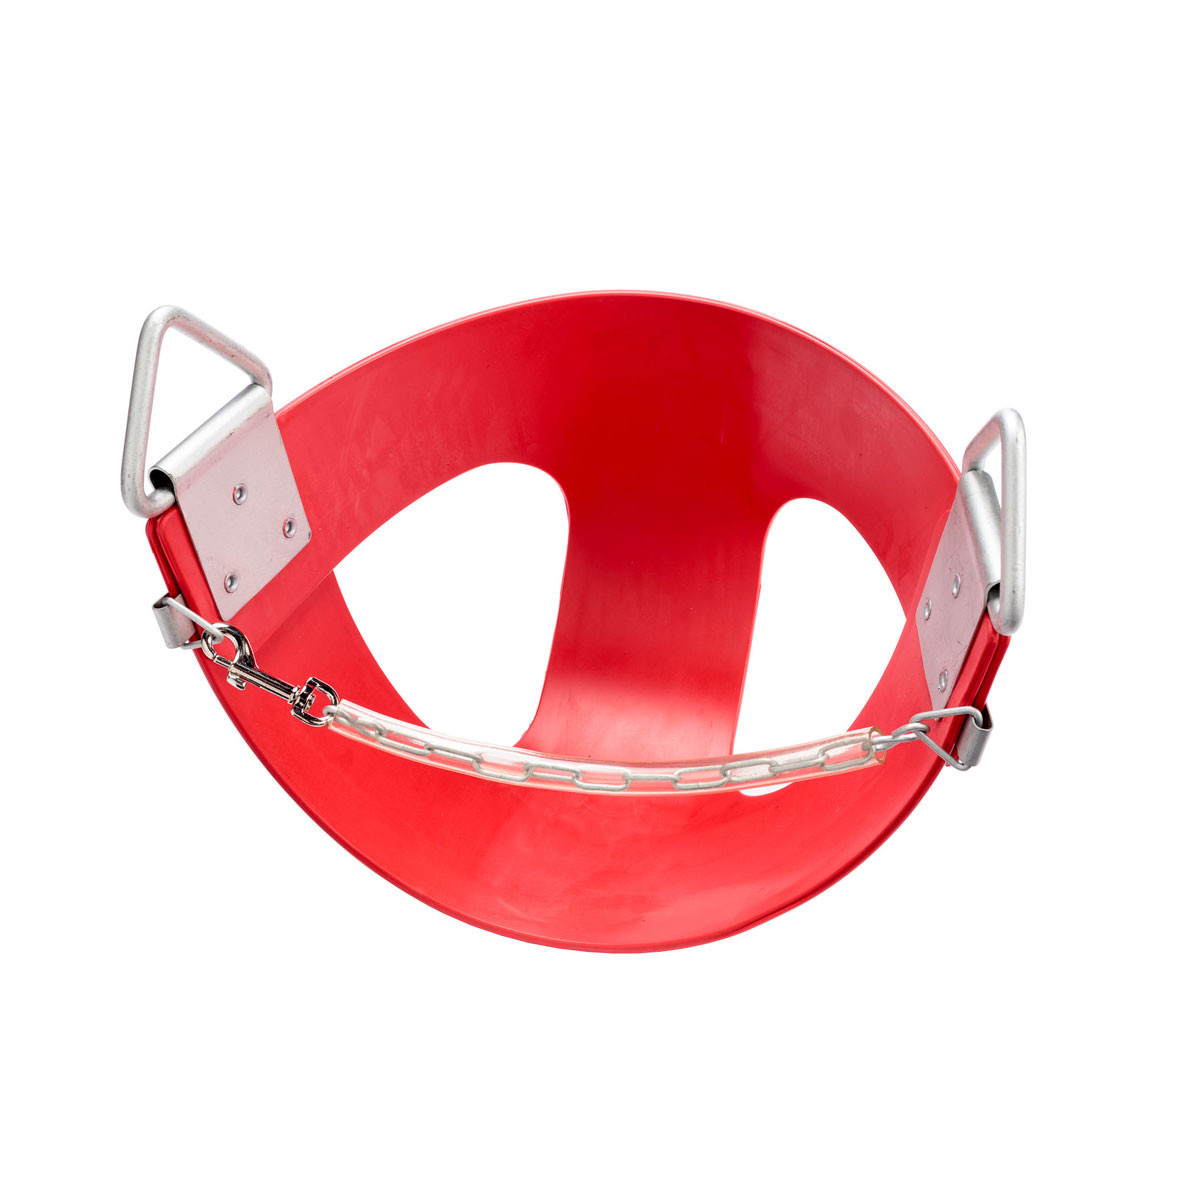 Commercial Rubber Half Bucket Swing Seat - Red